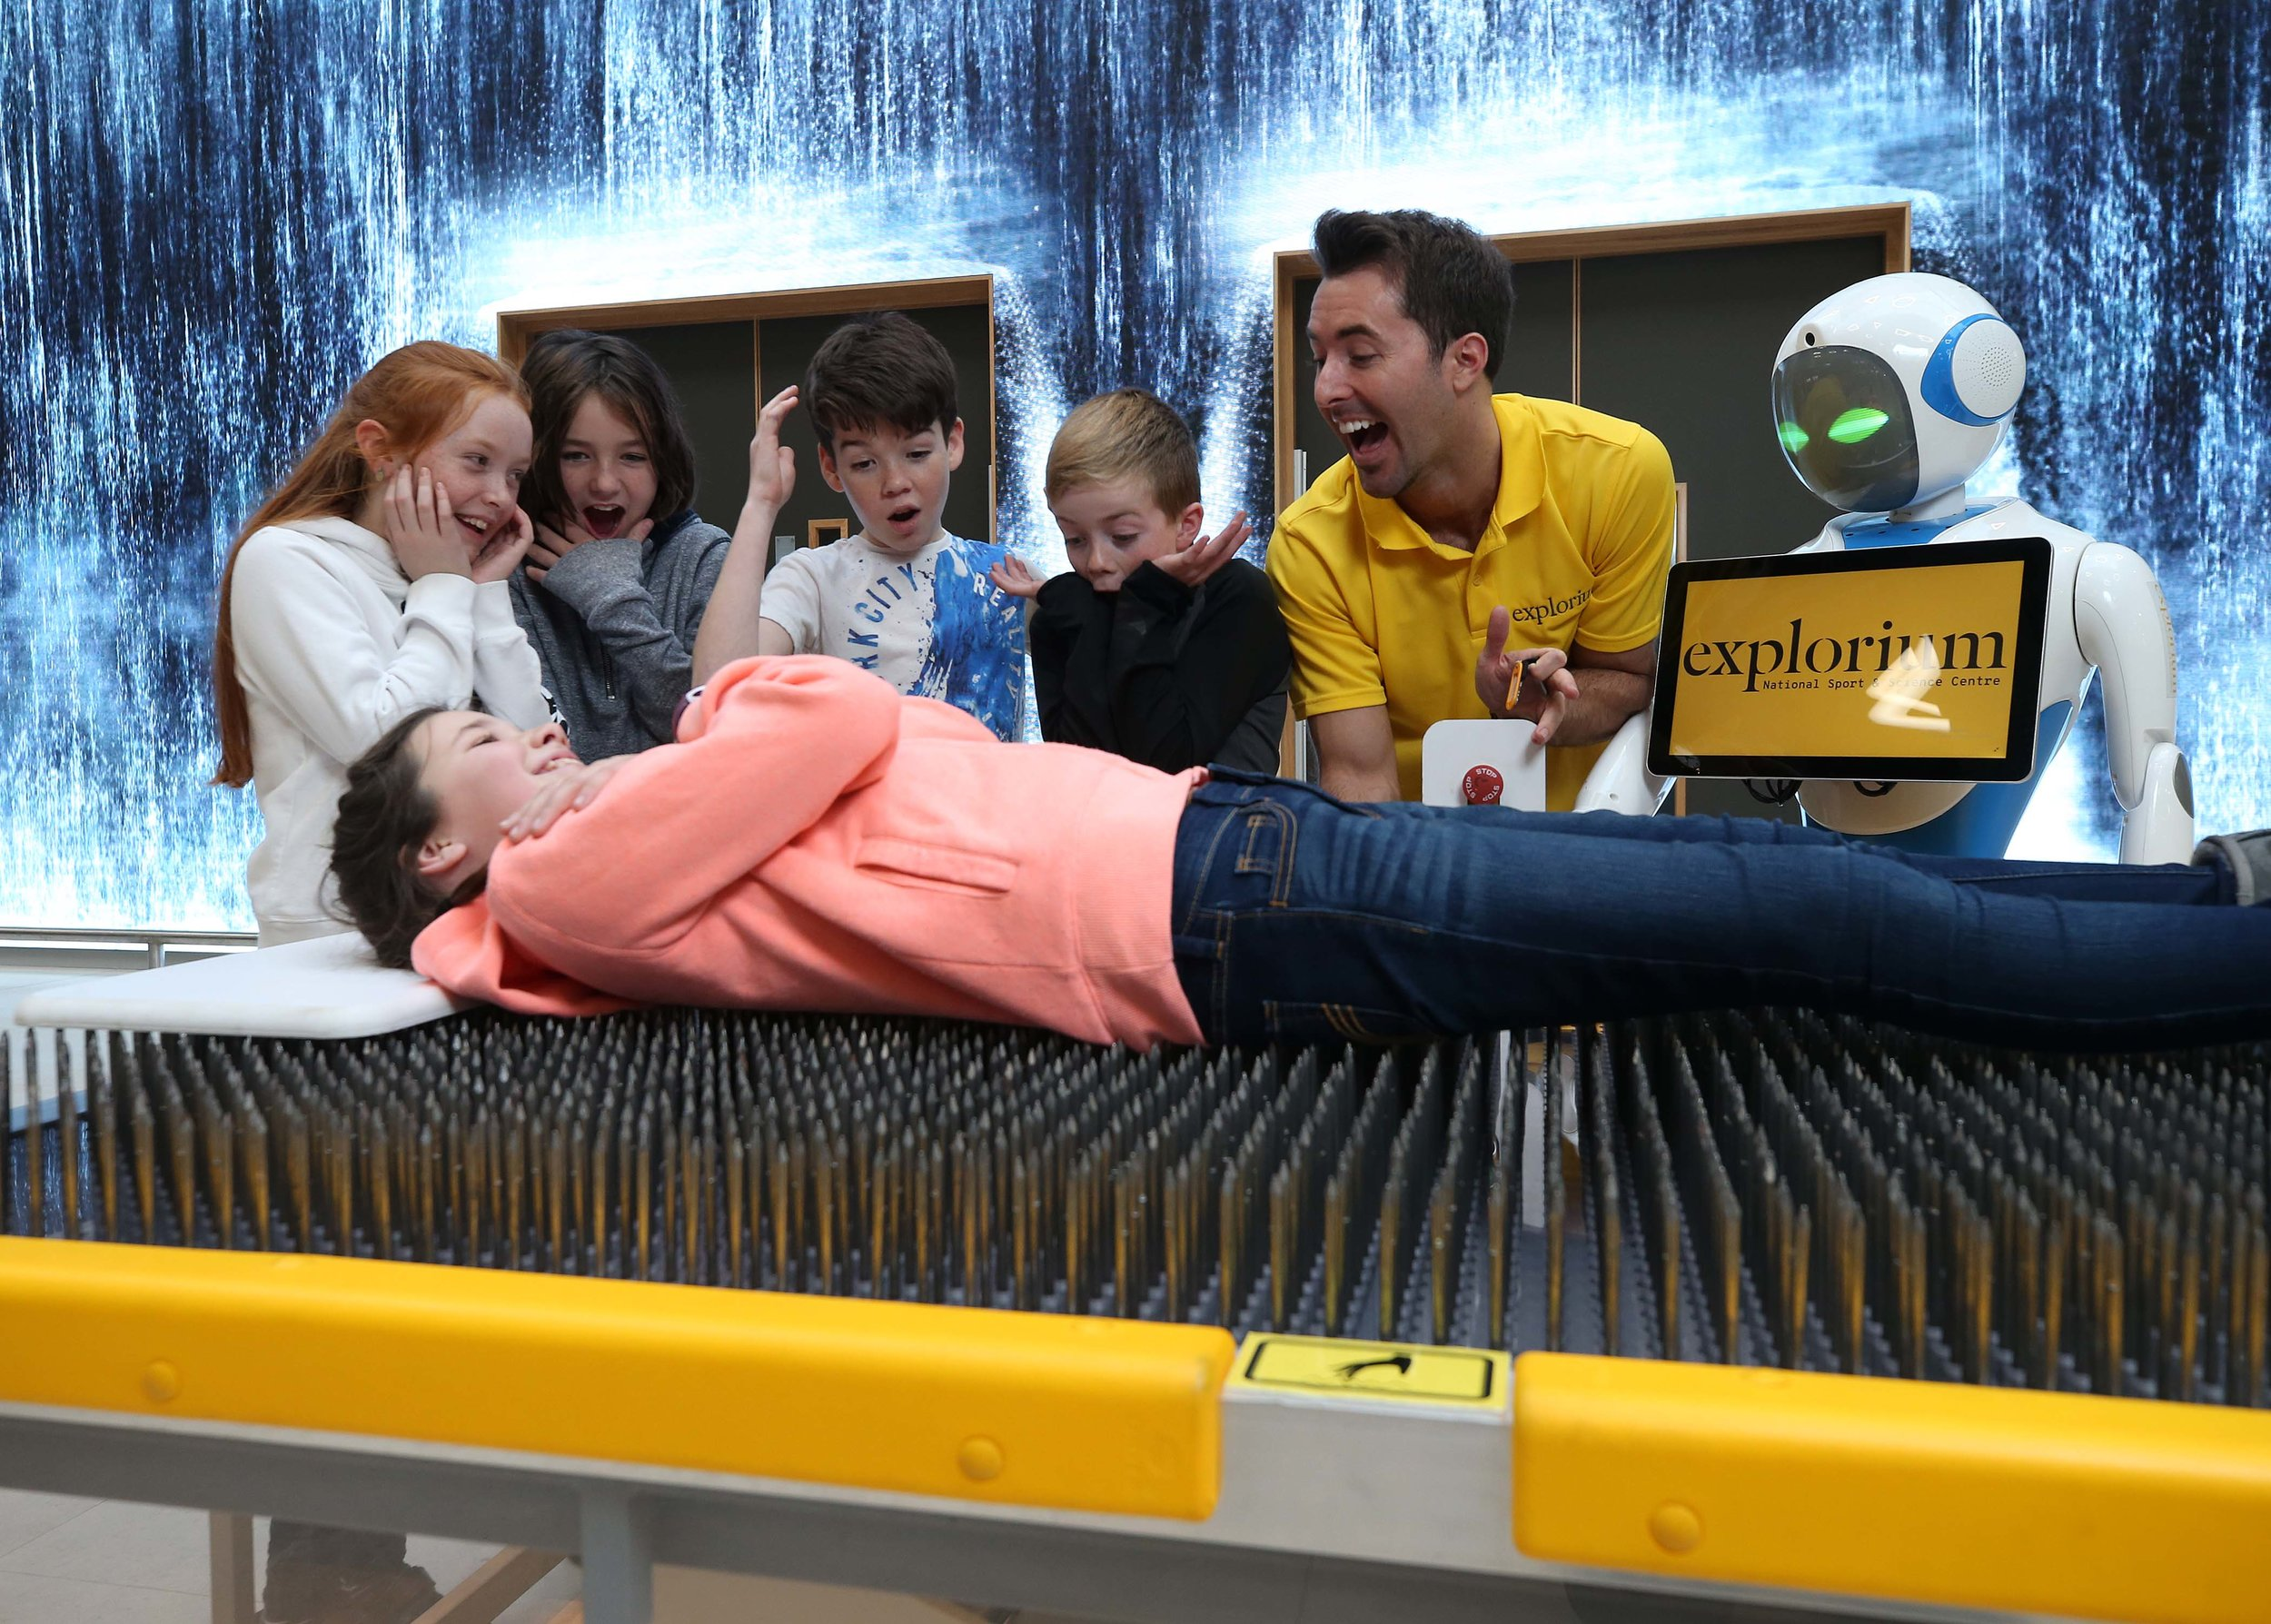 Explorium Bed of nails exhibit with Mark Langtry, kids and robot.JPG